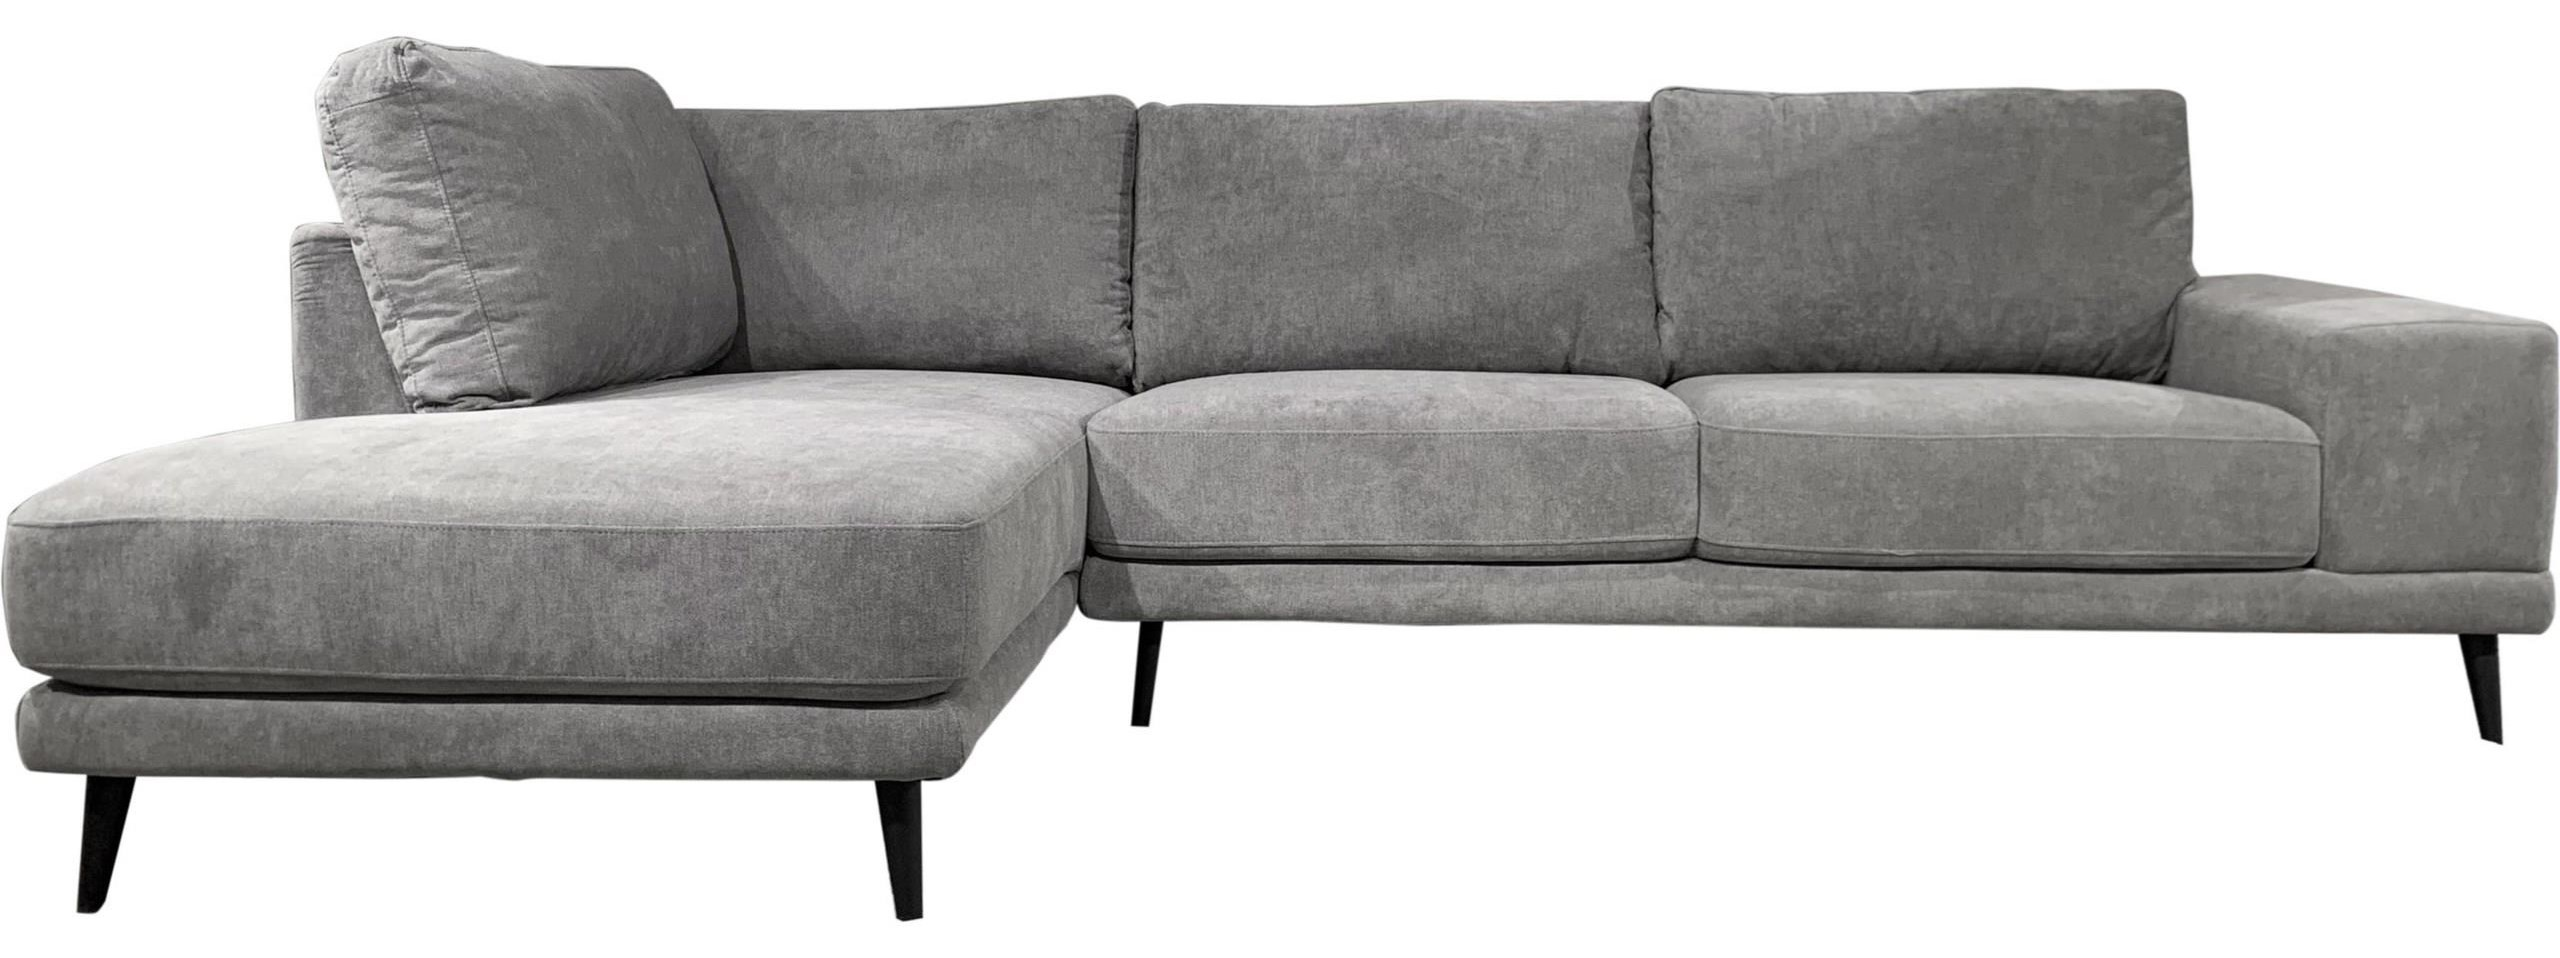 Avoca Sectional by Amalfi Home Furniture at HomeWorld Furniture